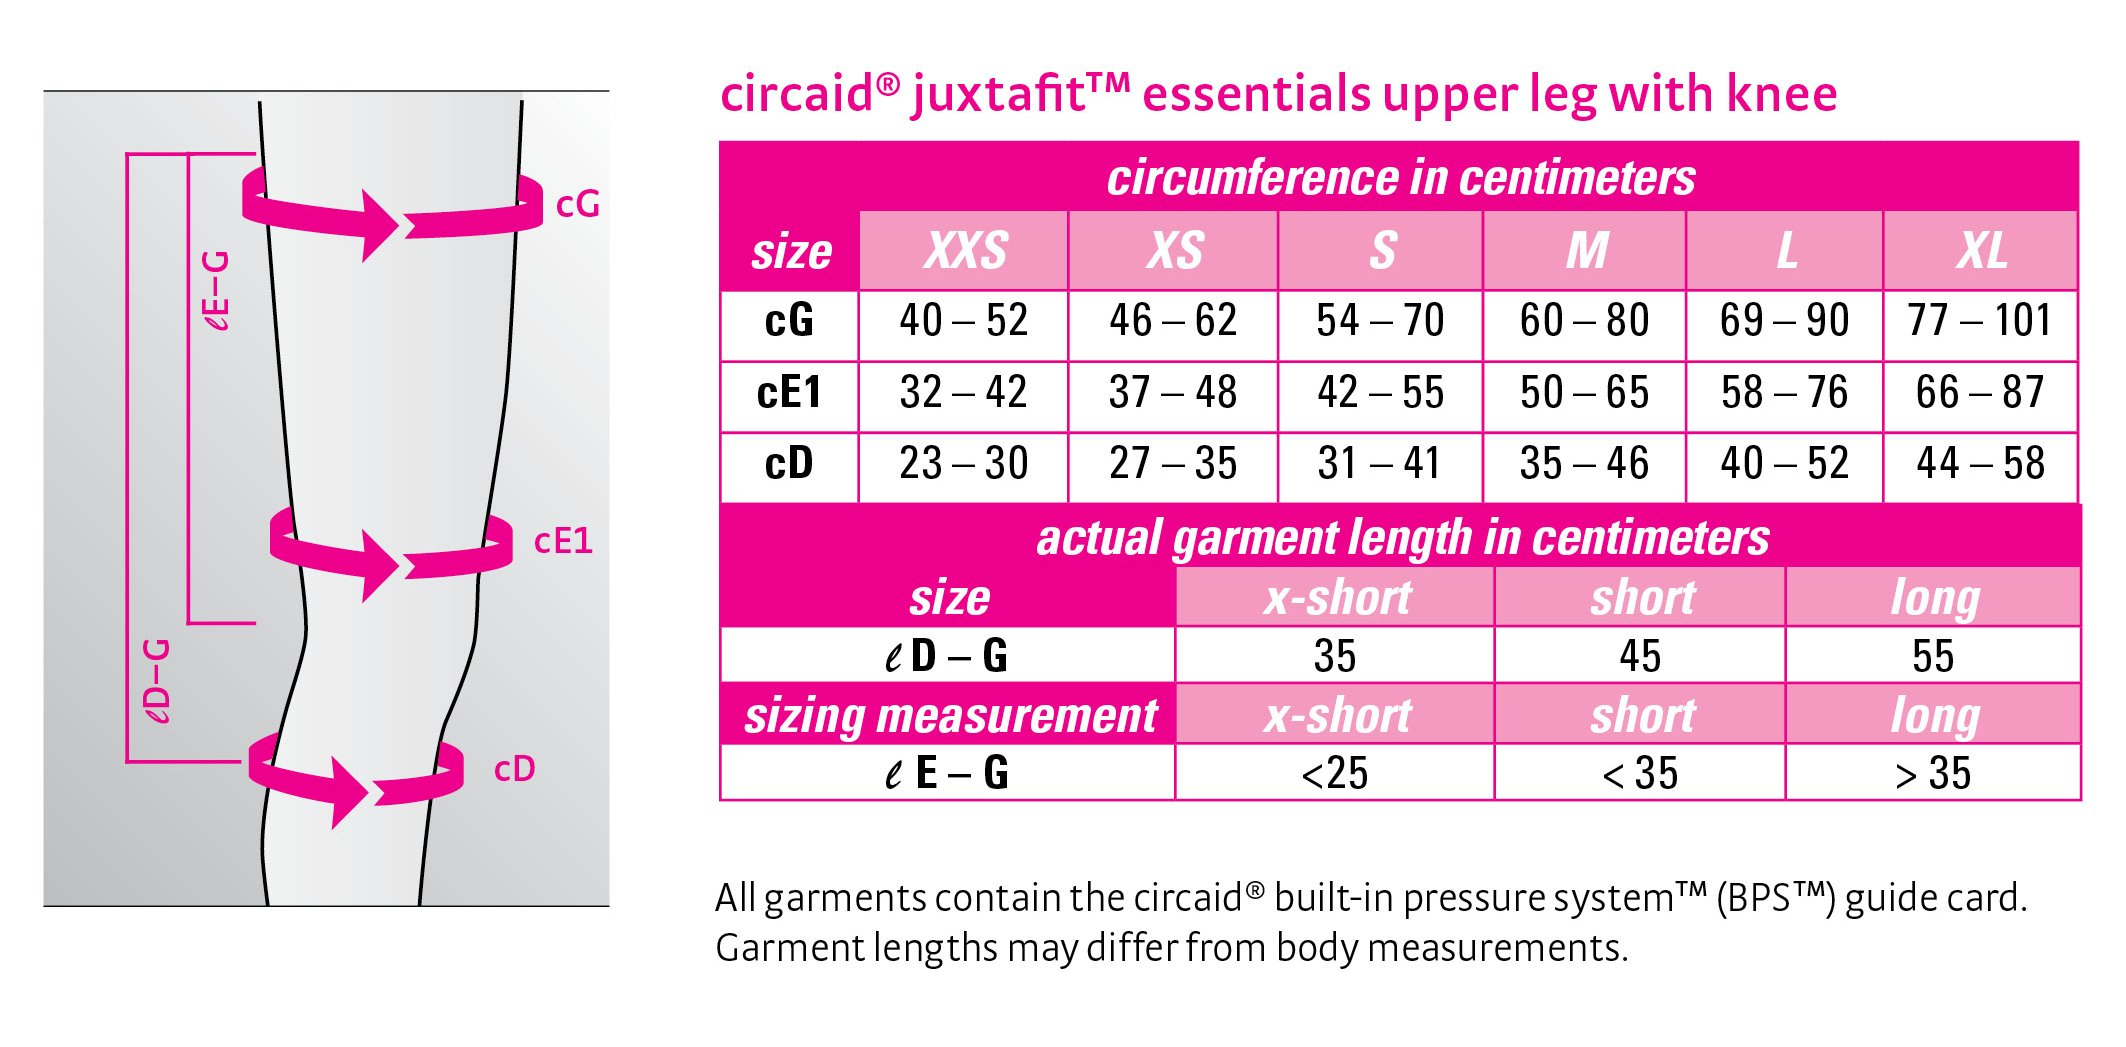 Circaid Juxta Fit Essentials Long Upper Legging with Knee, 55 cm (XL (Left)) by CircAid (Image #2)